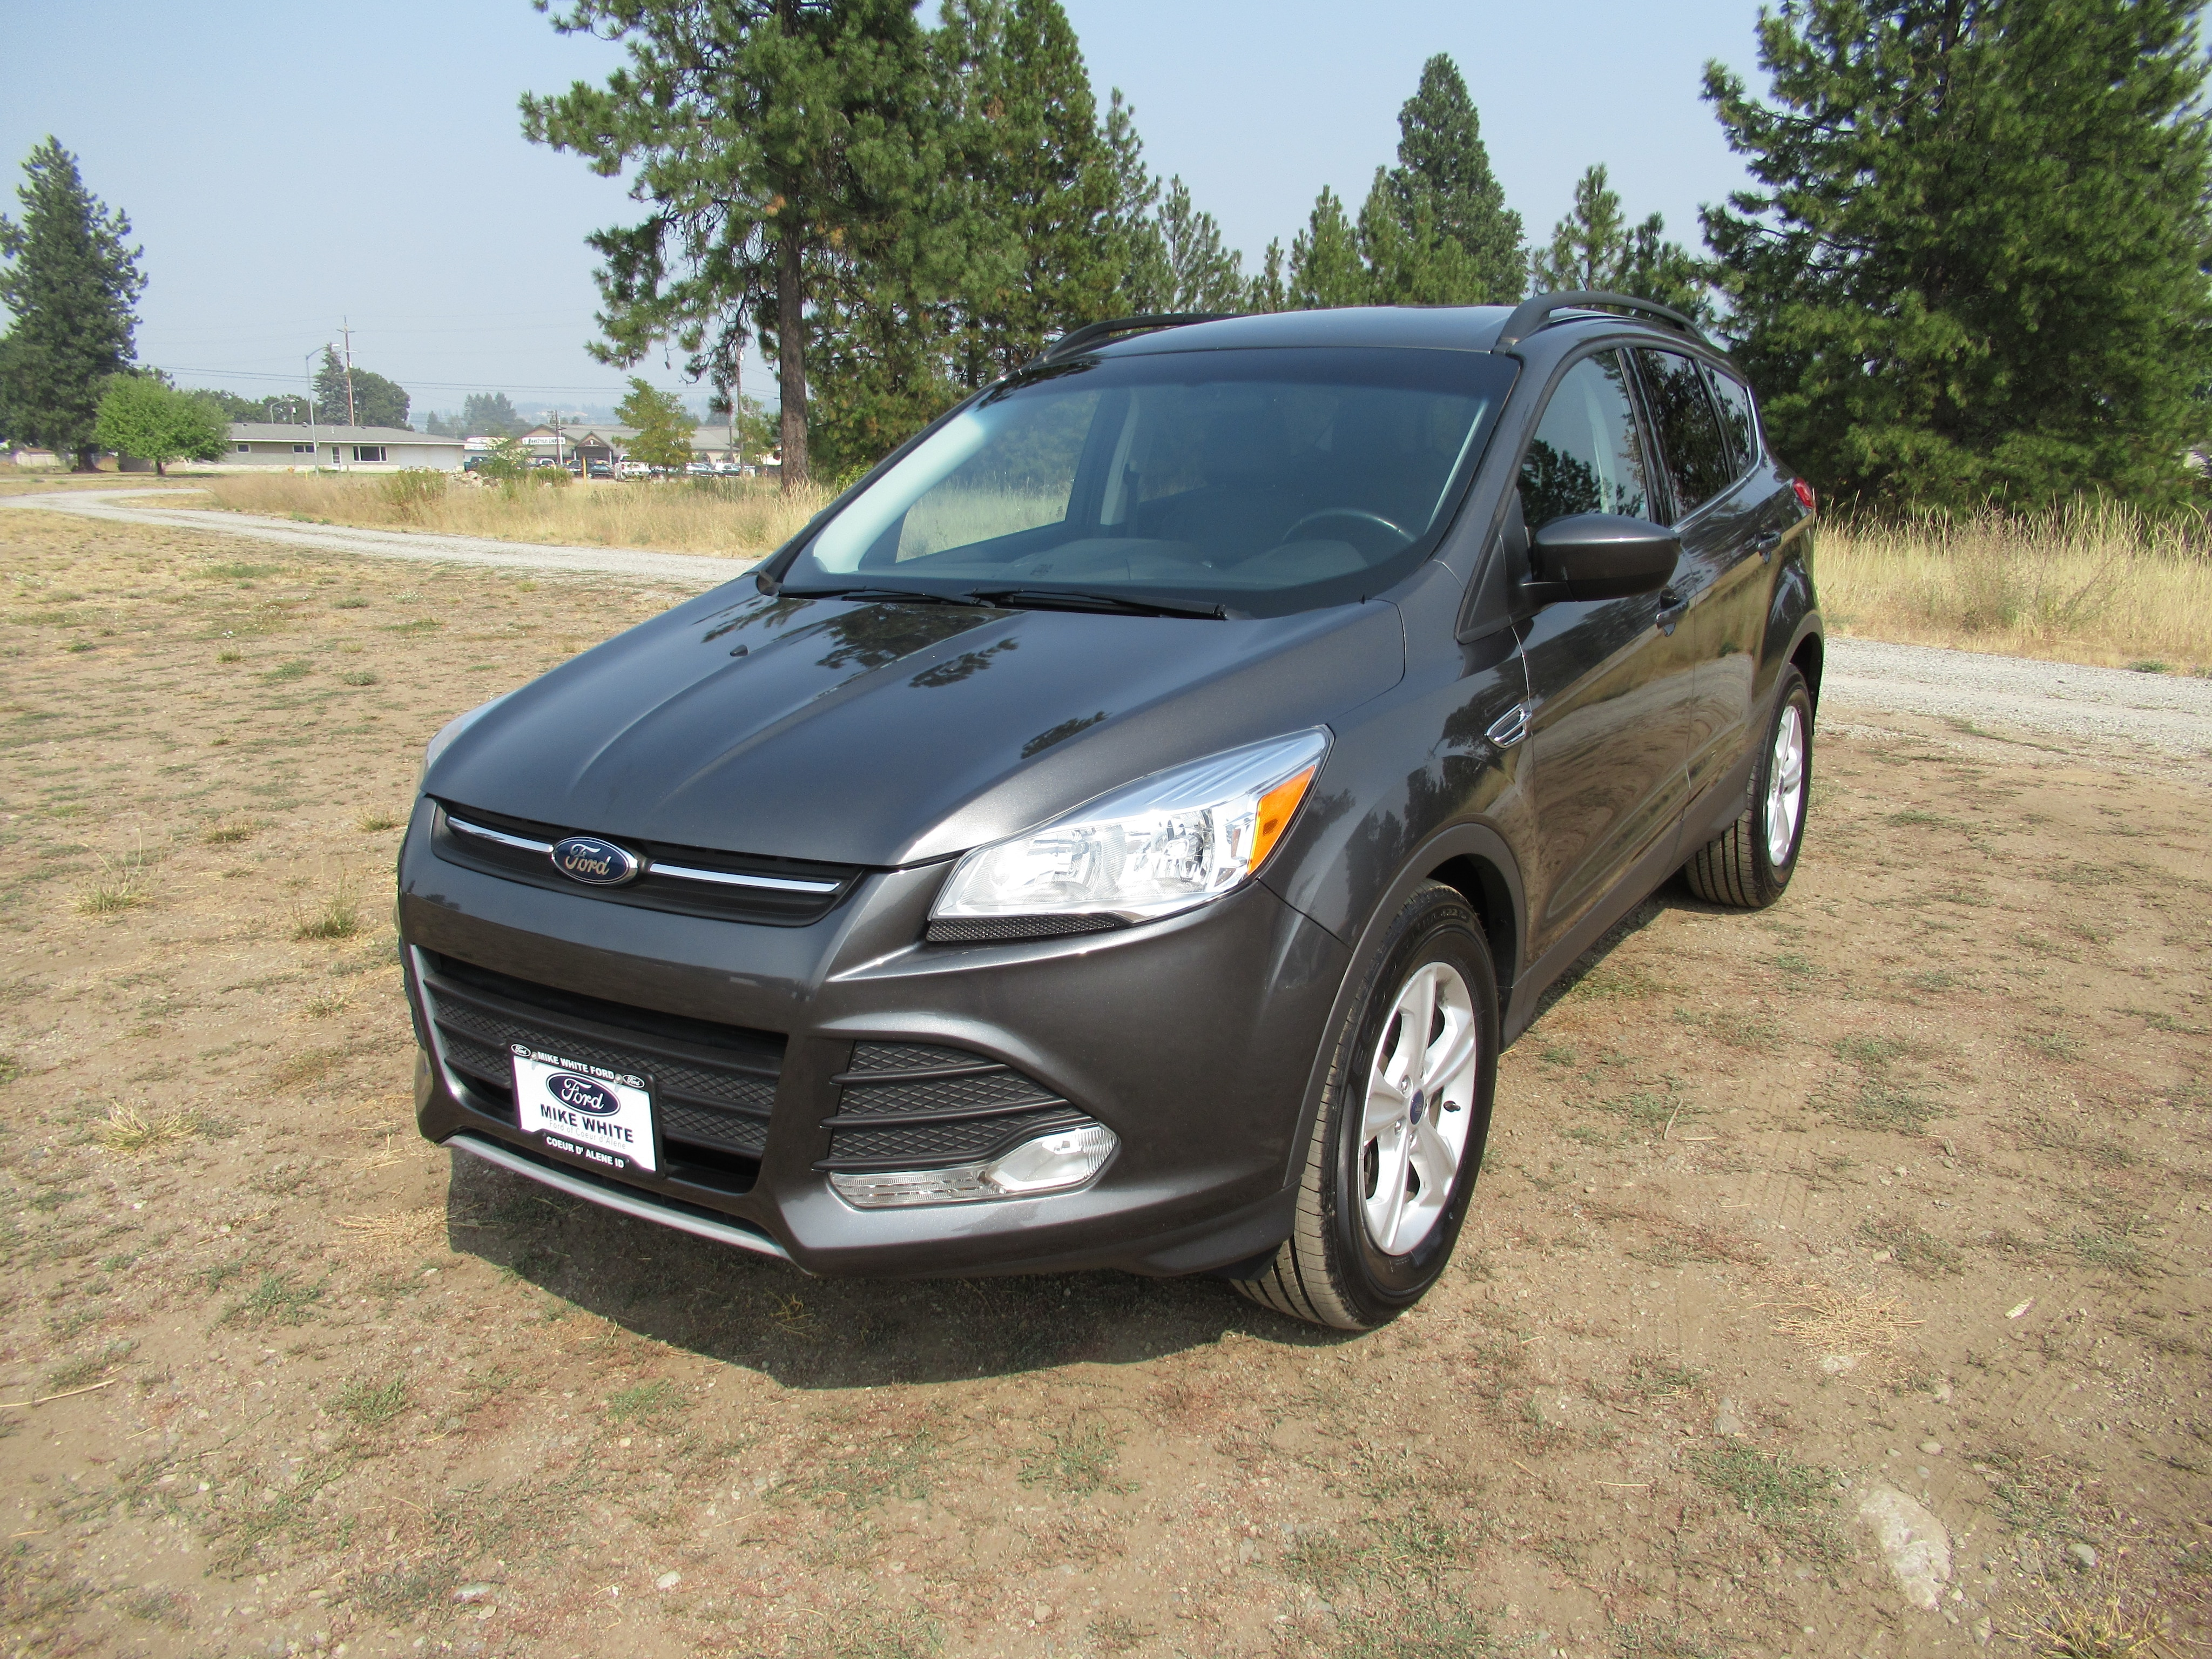 used ford cars trucks suvs in coeur d alene mike white ford lincoln offers pre owned vehicles at prices you can afford